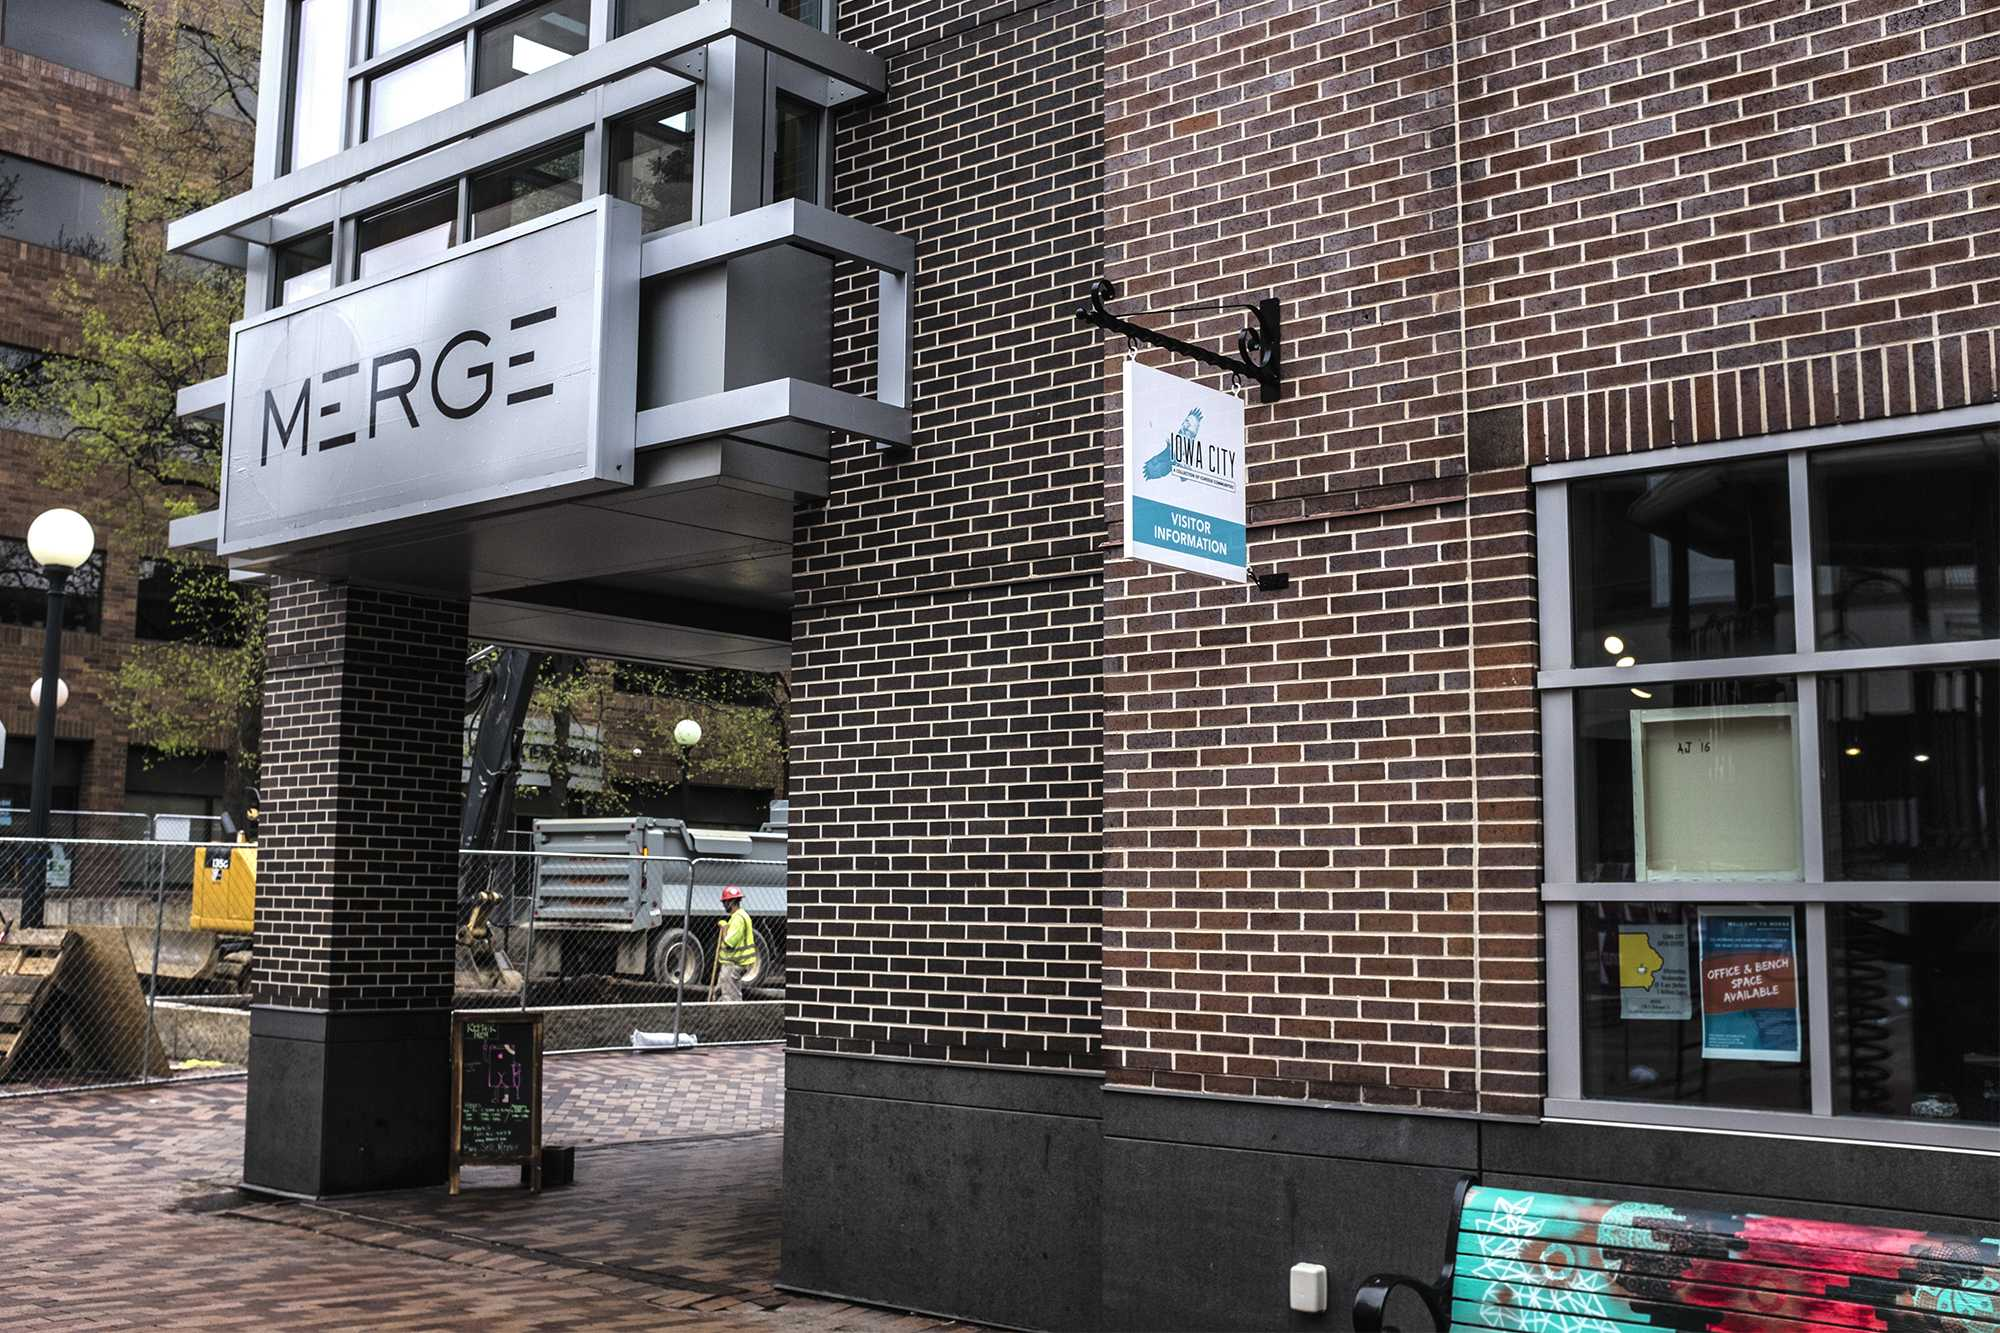 MERGE, a co-working space located on the Ped Mall, celebrates its first birthday